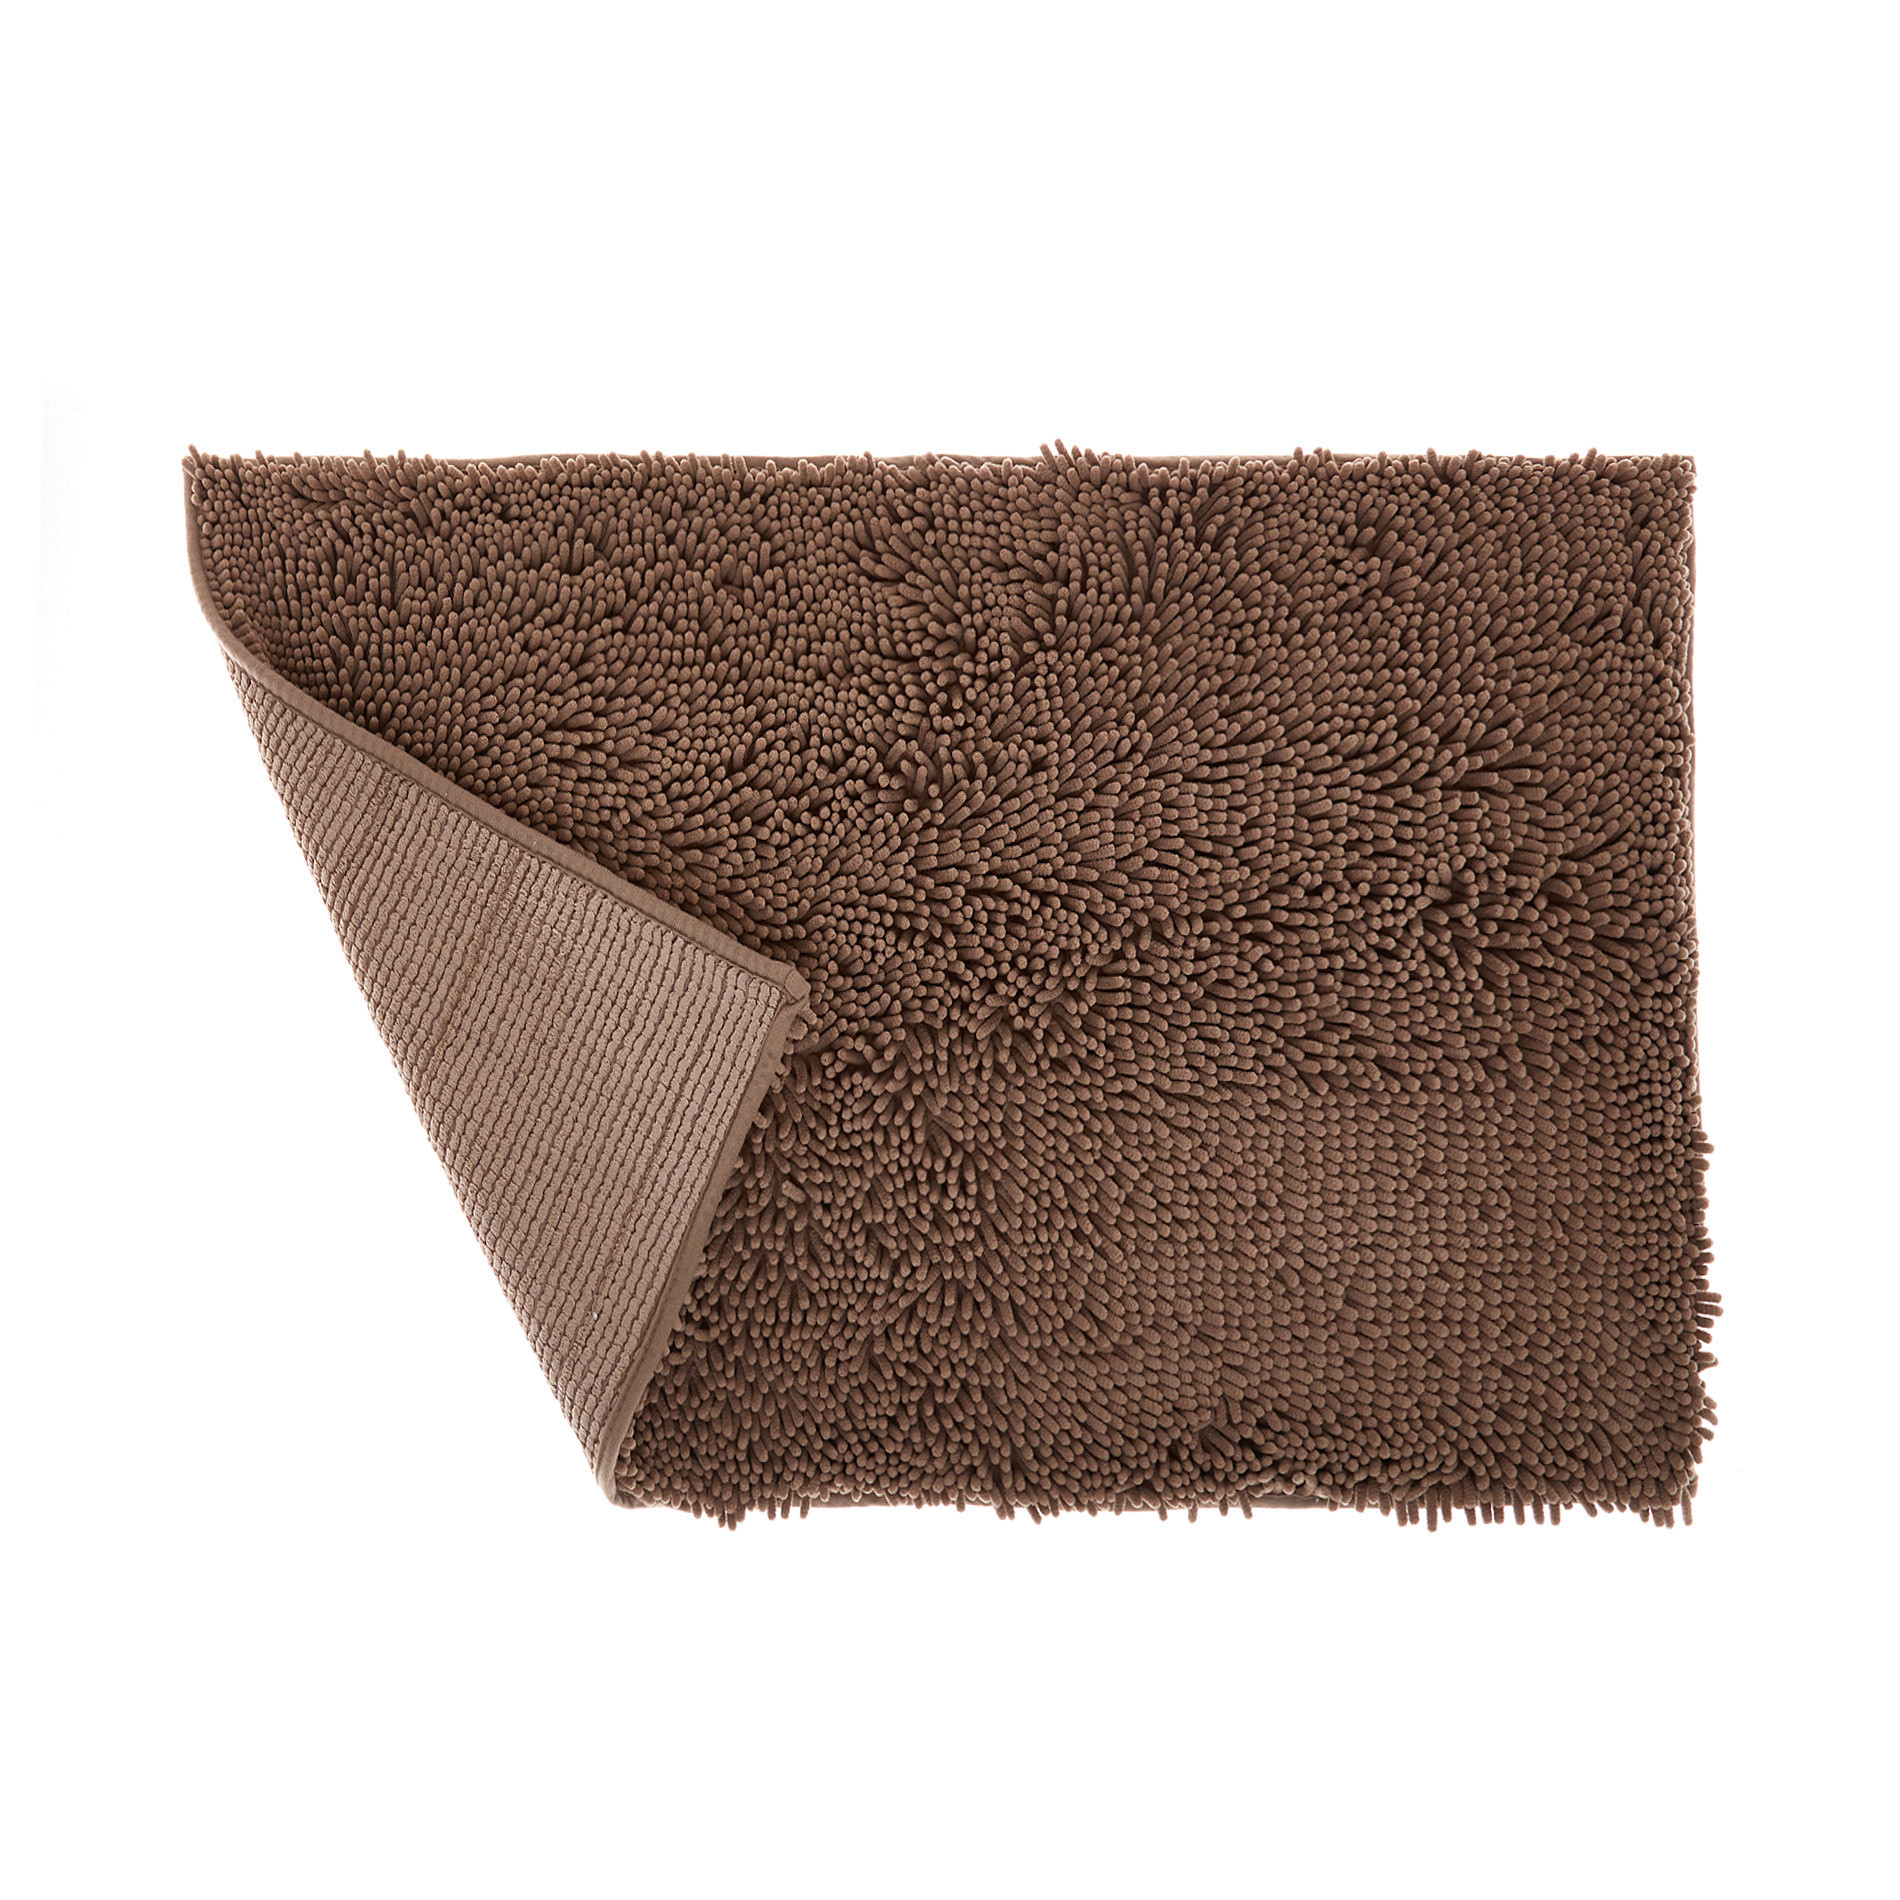 Tappeto bagno microfibra shaggy, Beige scuro, large image number 1